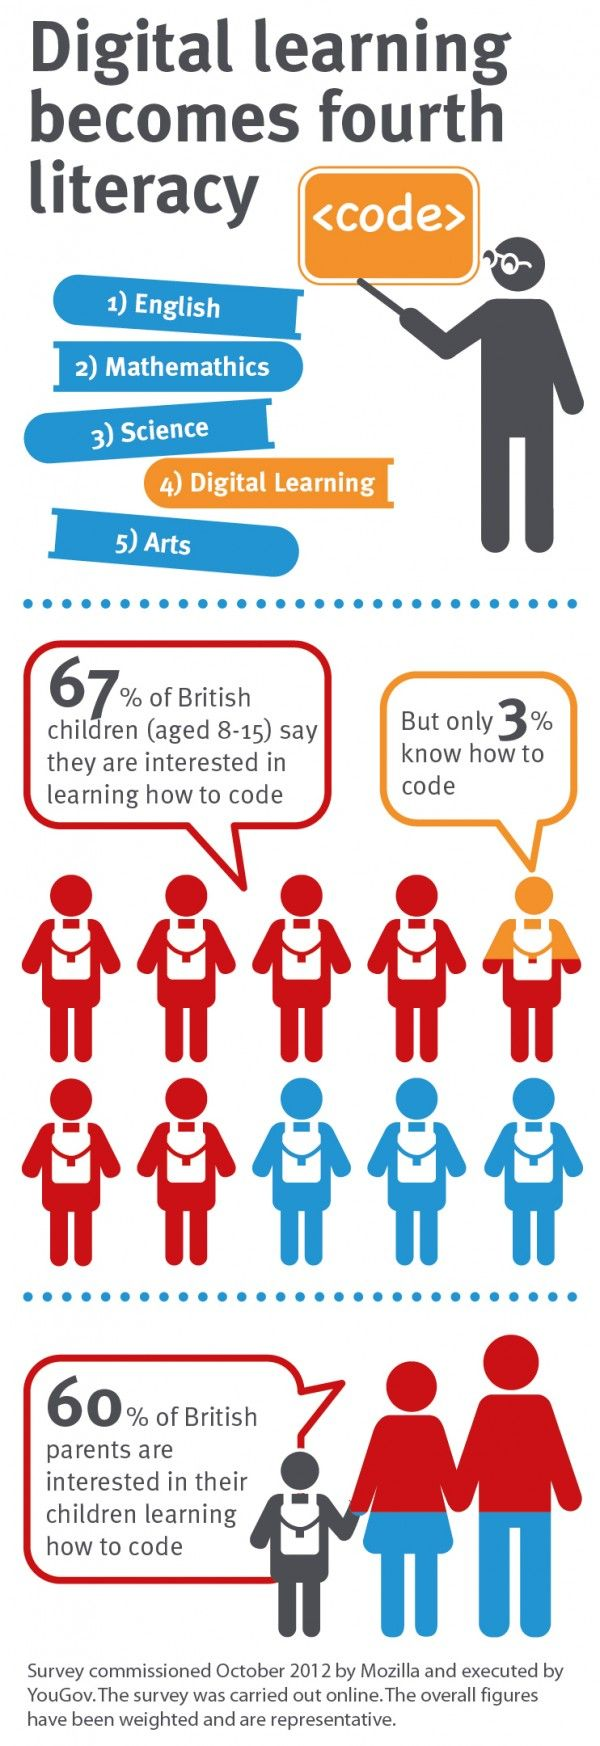 Digital learning becomes fourth literacy #infographic